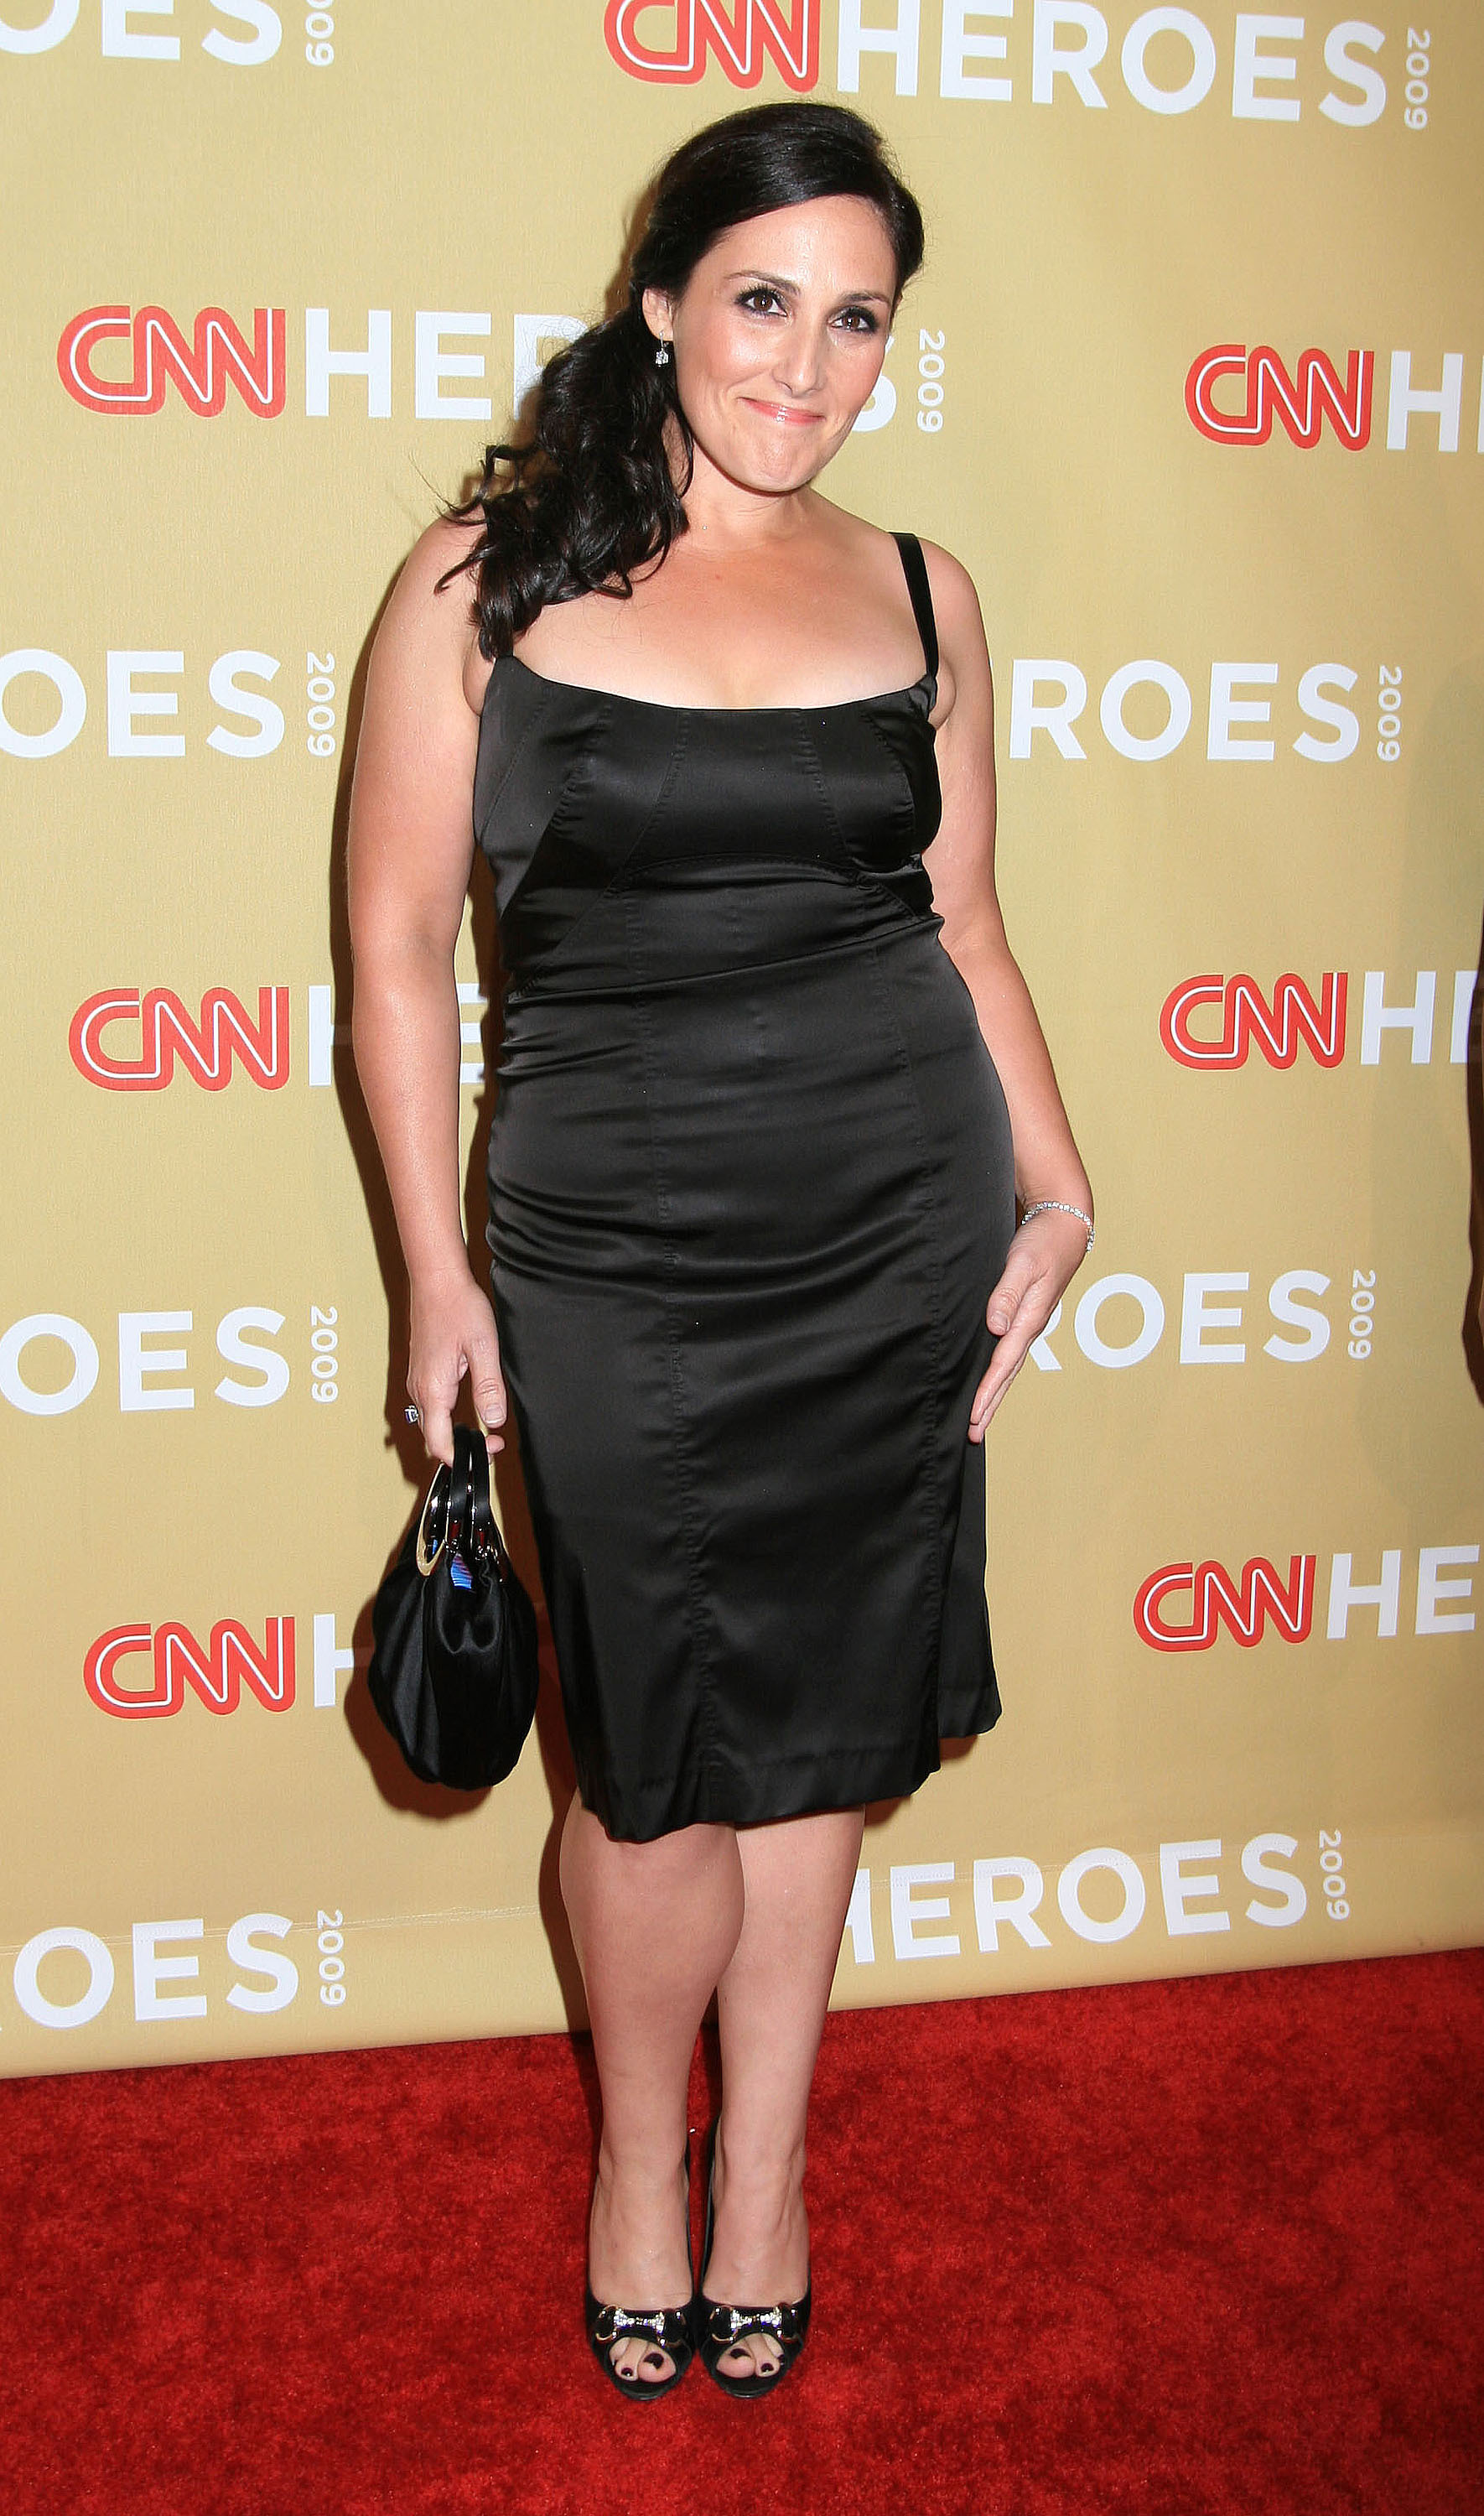 Ricki Lake Hot in Black